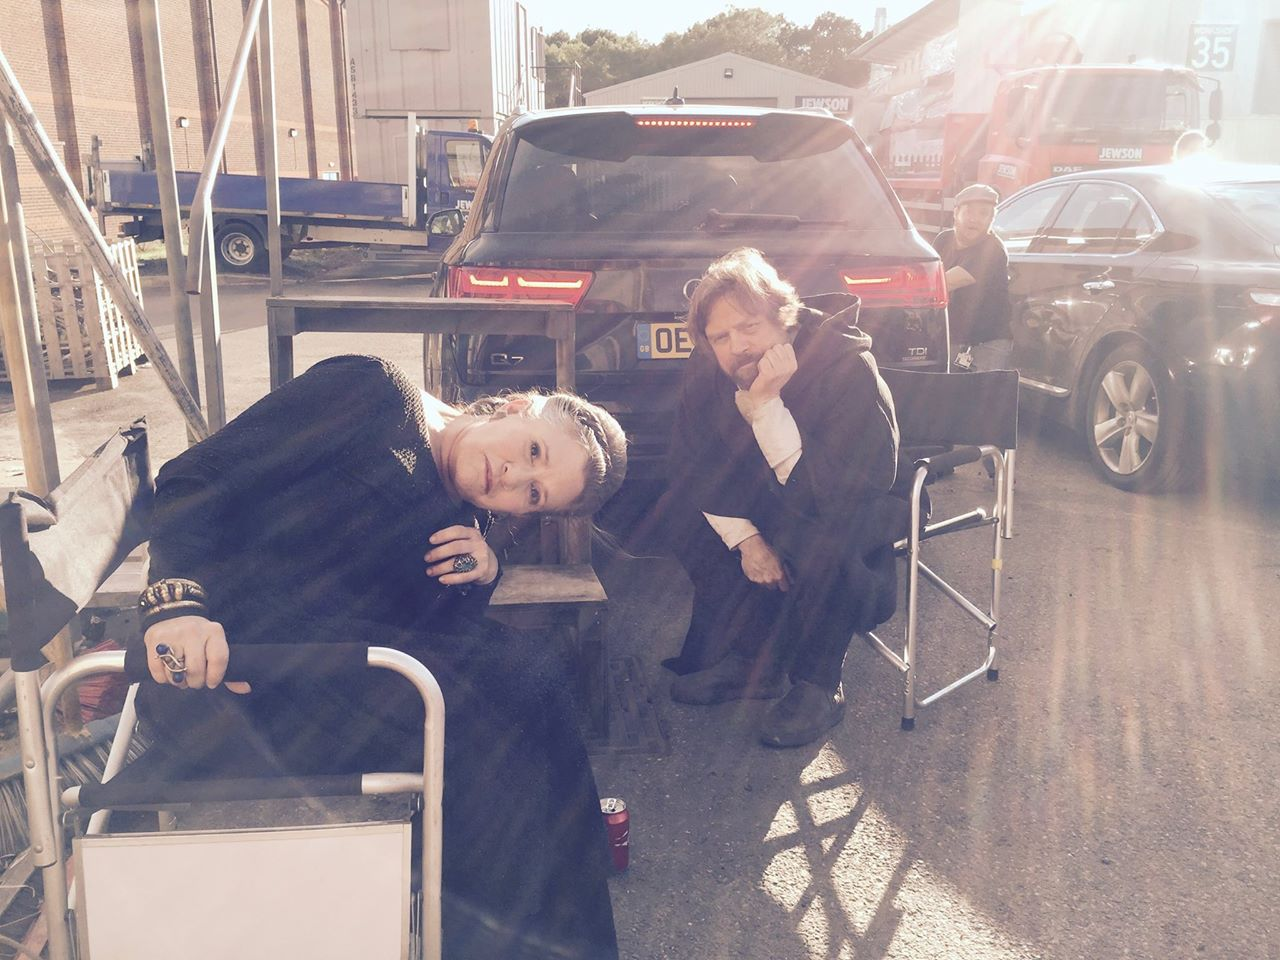 Carrie Fisher y Mark Hamill en el set de rodaje del Episodio VIII